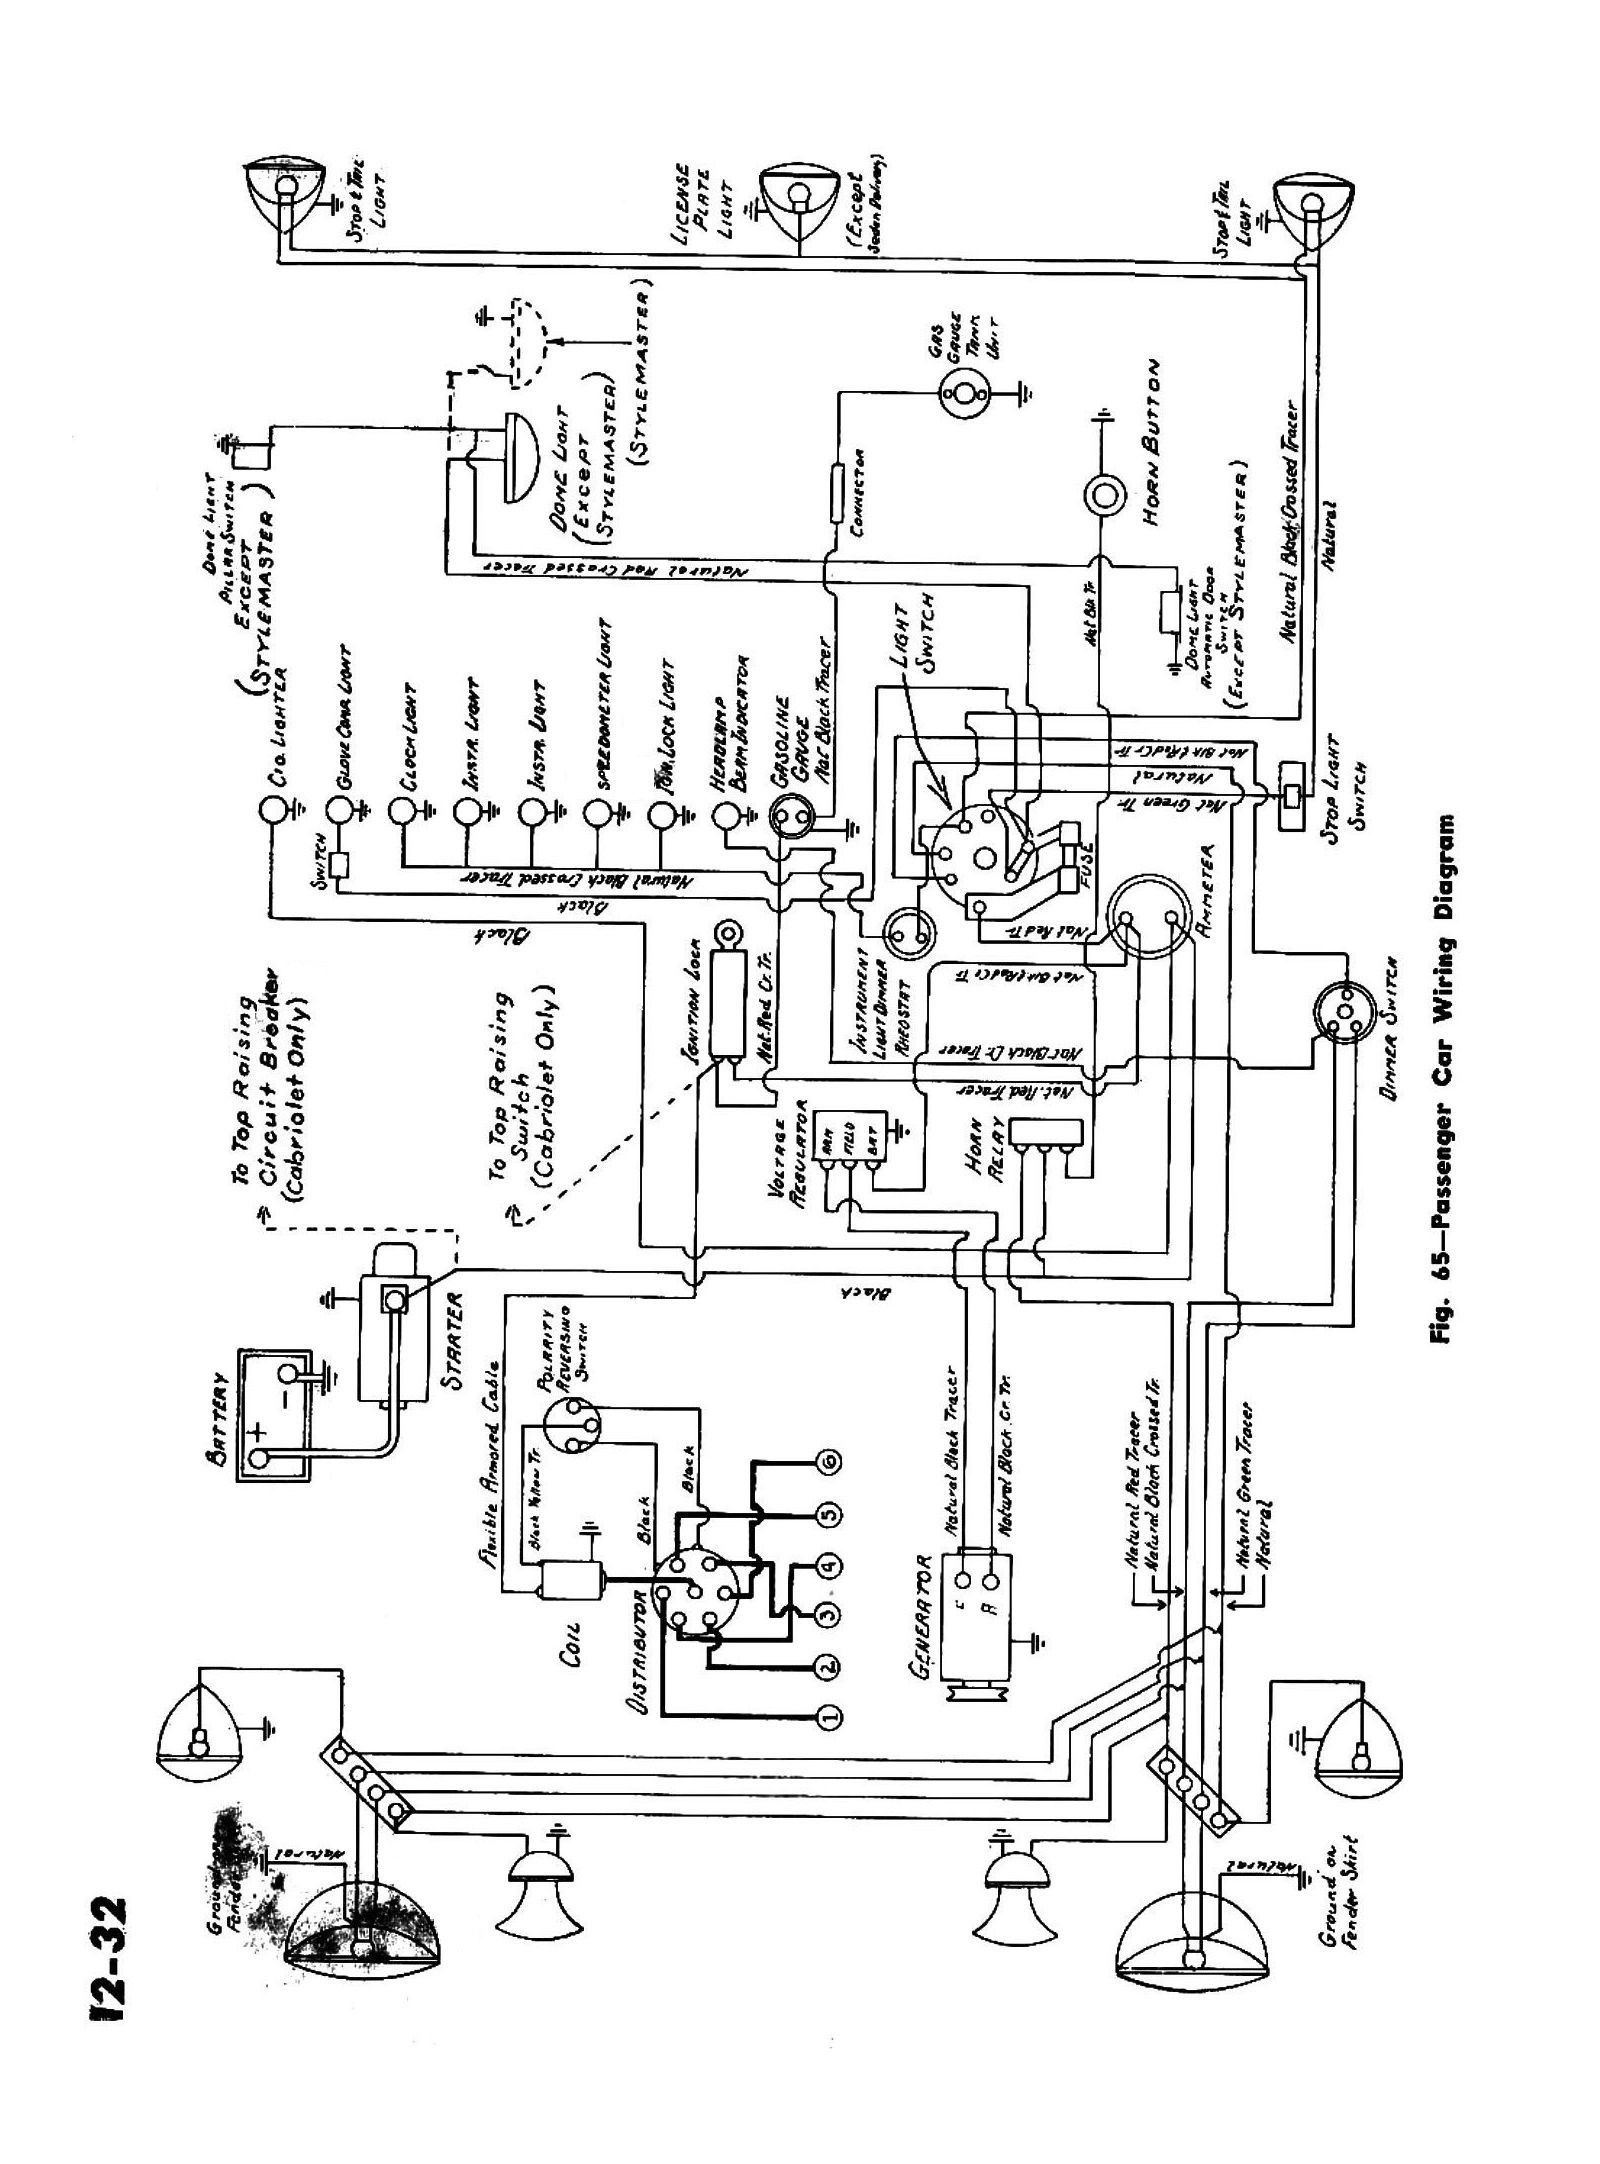 New Simple Electrical Wiring Diagram Wiringdiagram Diagramming